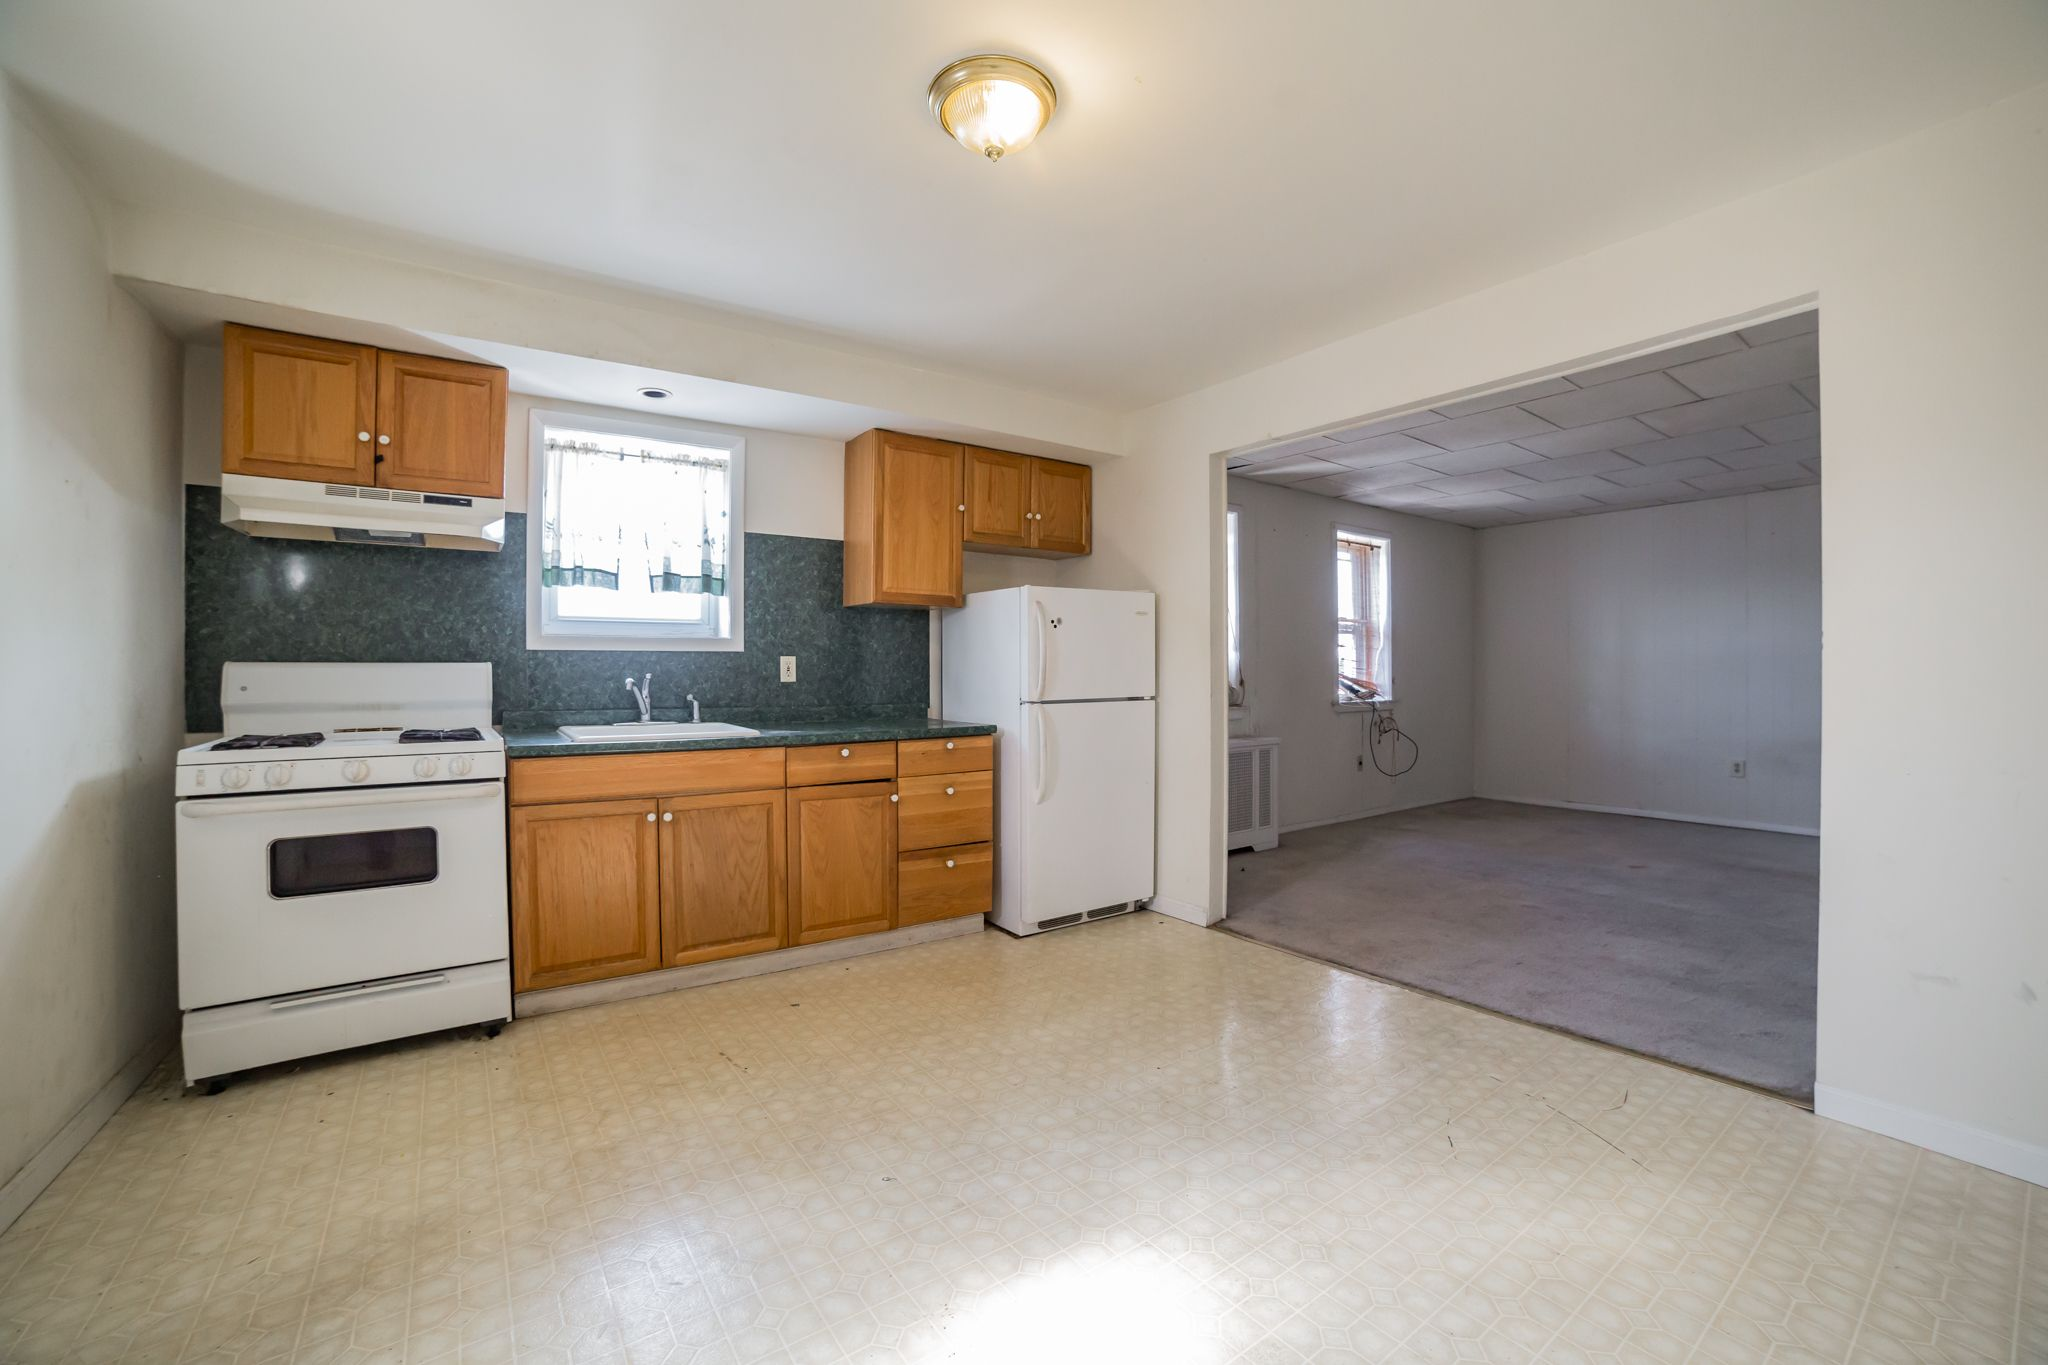 The 2nd floor is a large 2 bedroom/1 bathroom apartment